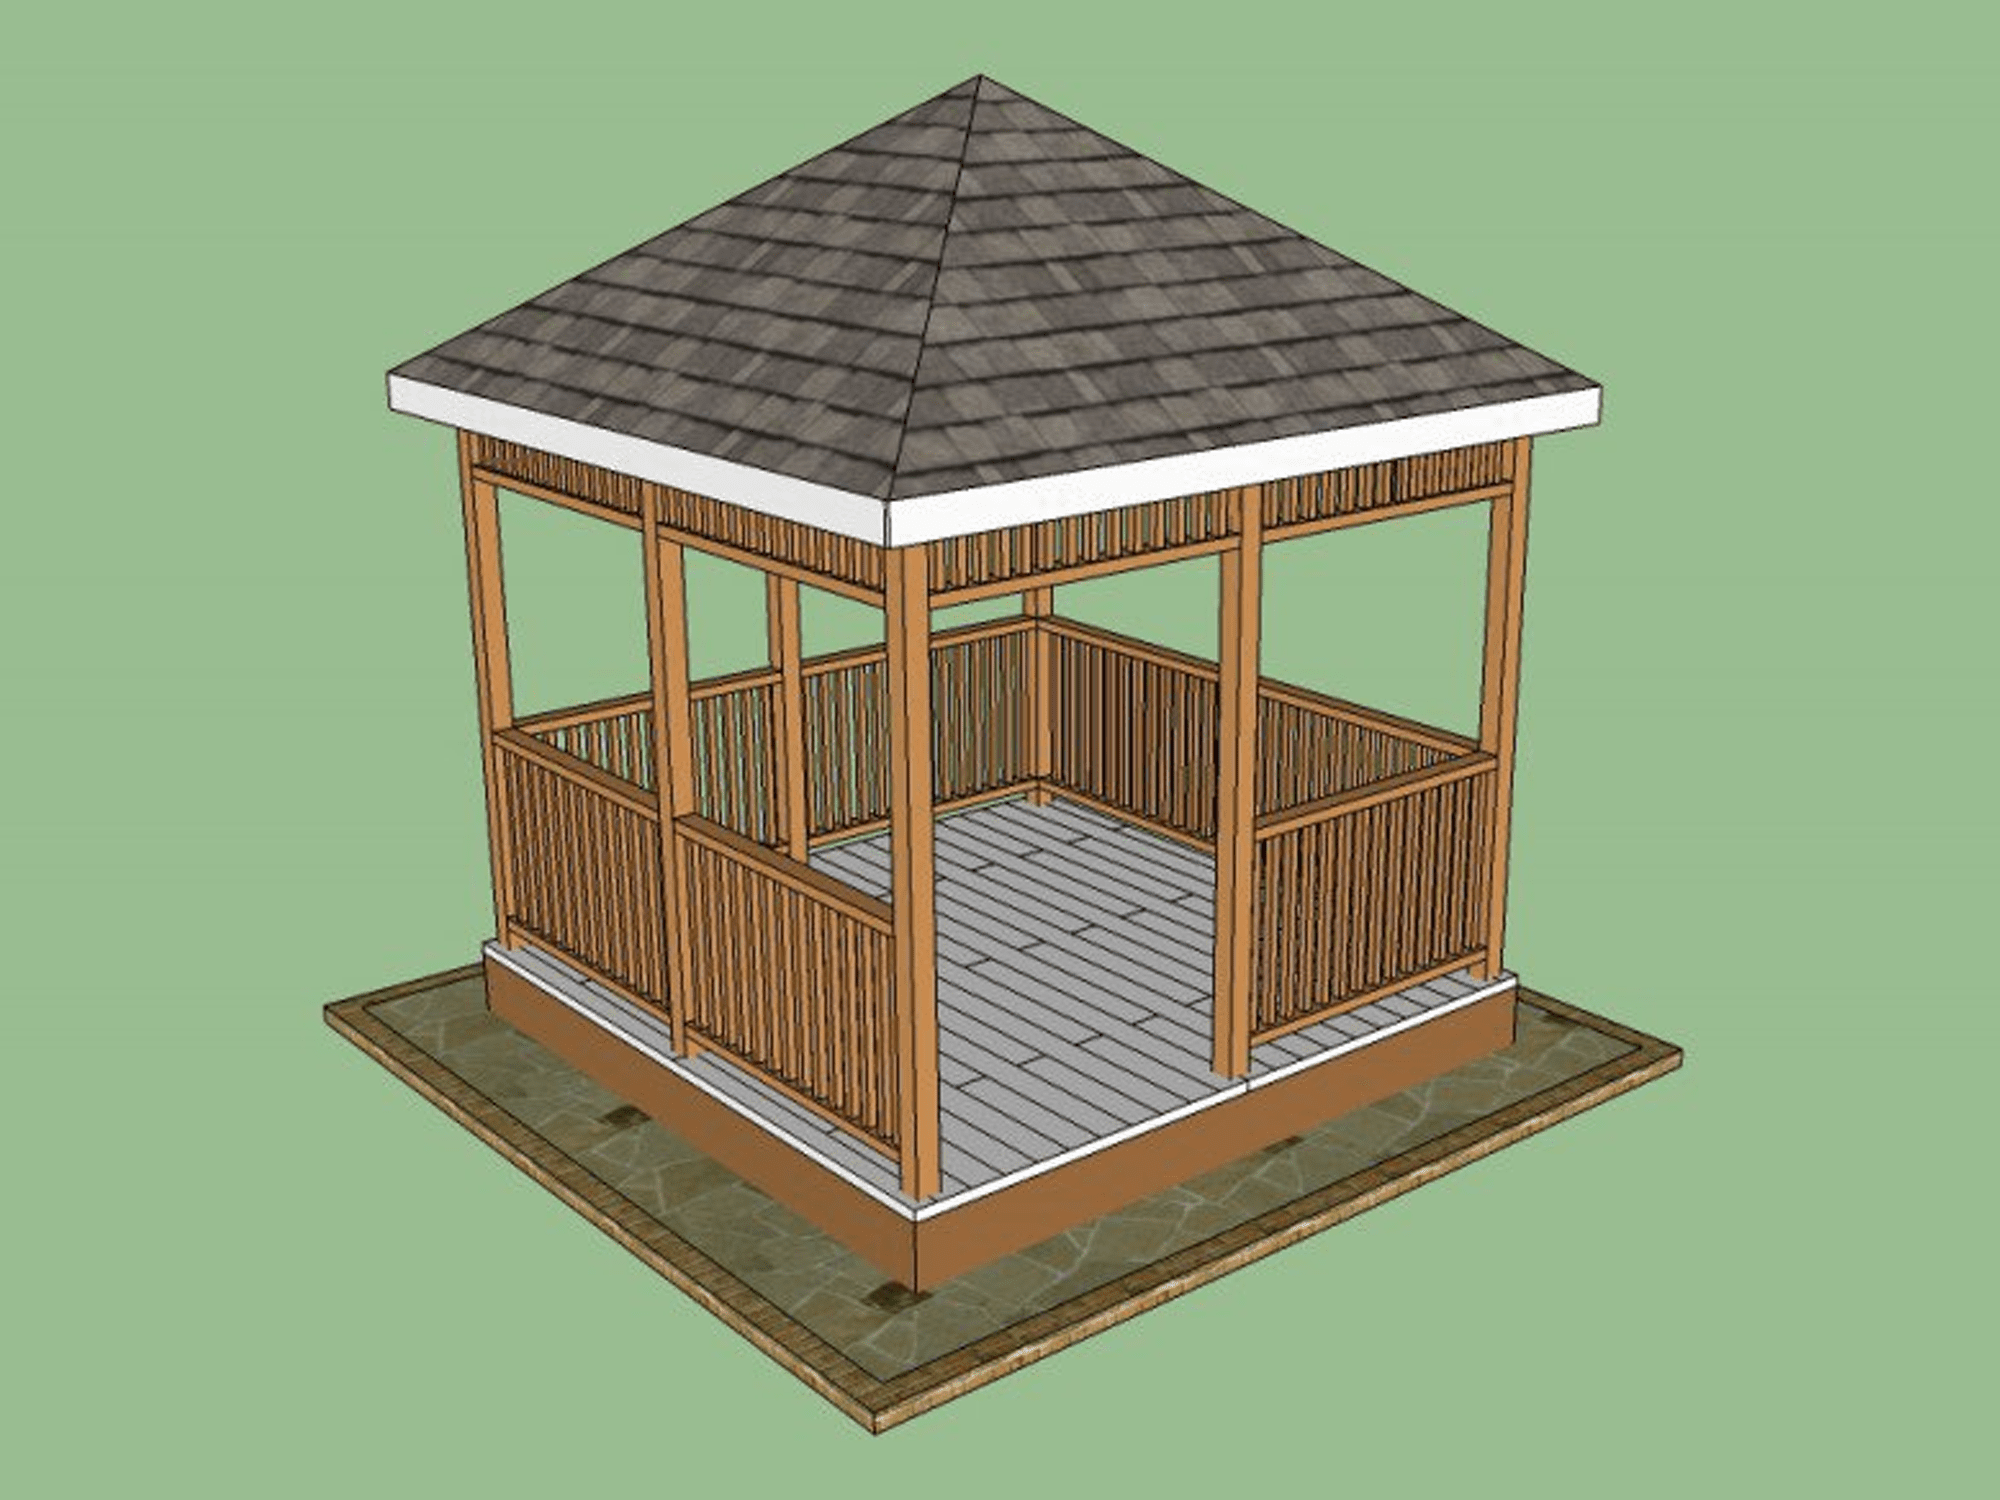 Do It Yourself Home Design: 11 Free Wooden Gazebo Plans You Can Download Today